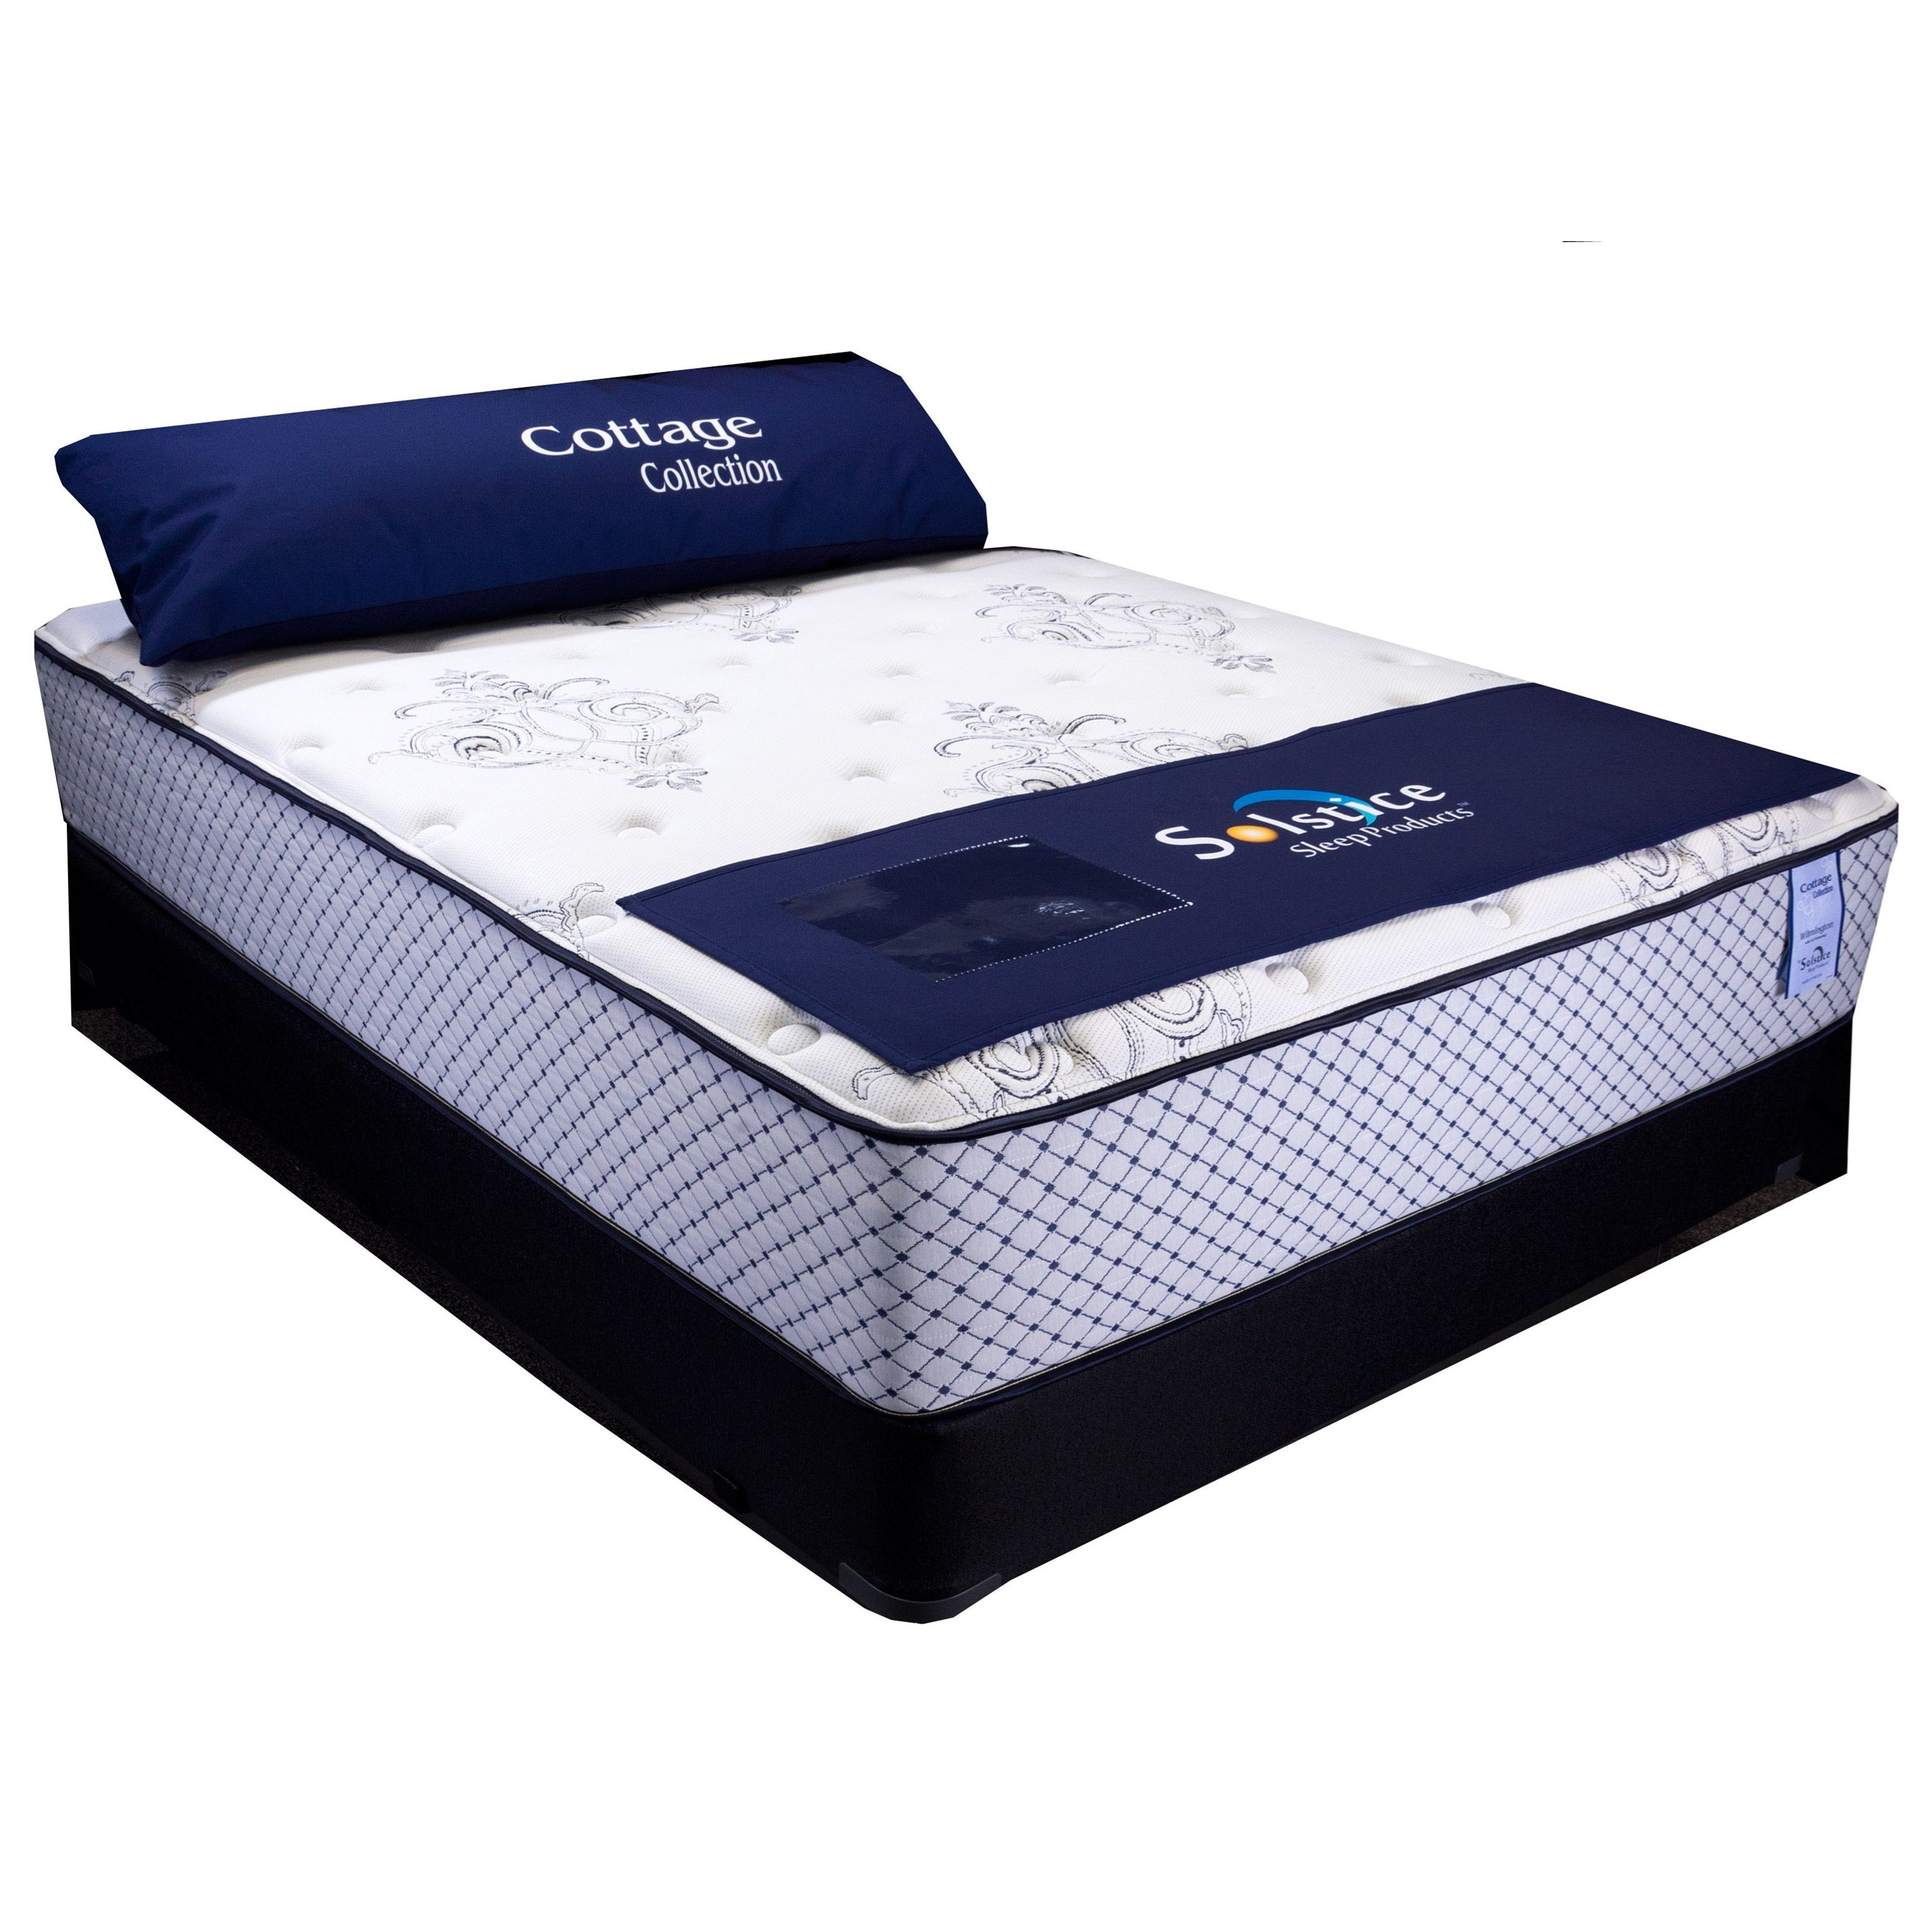 """Wilmington Plush II Full 13"""" Plush Low Profile Set by Solstice Sleep Products at Virginia Furniture Market"""